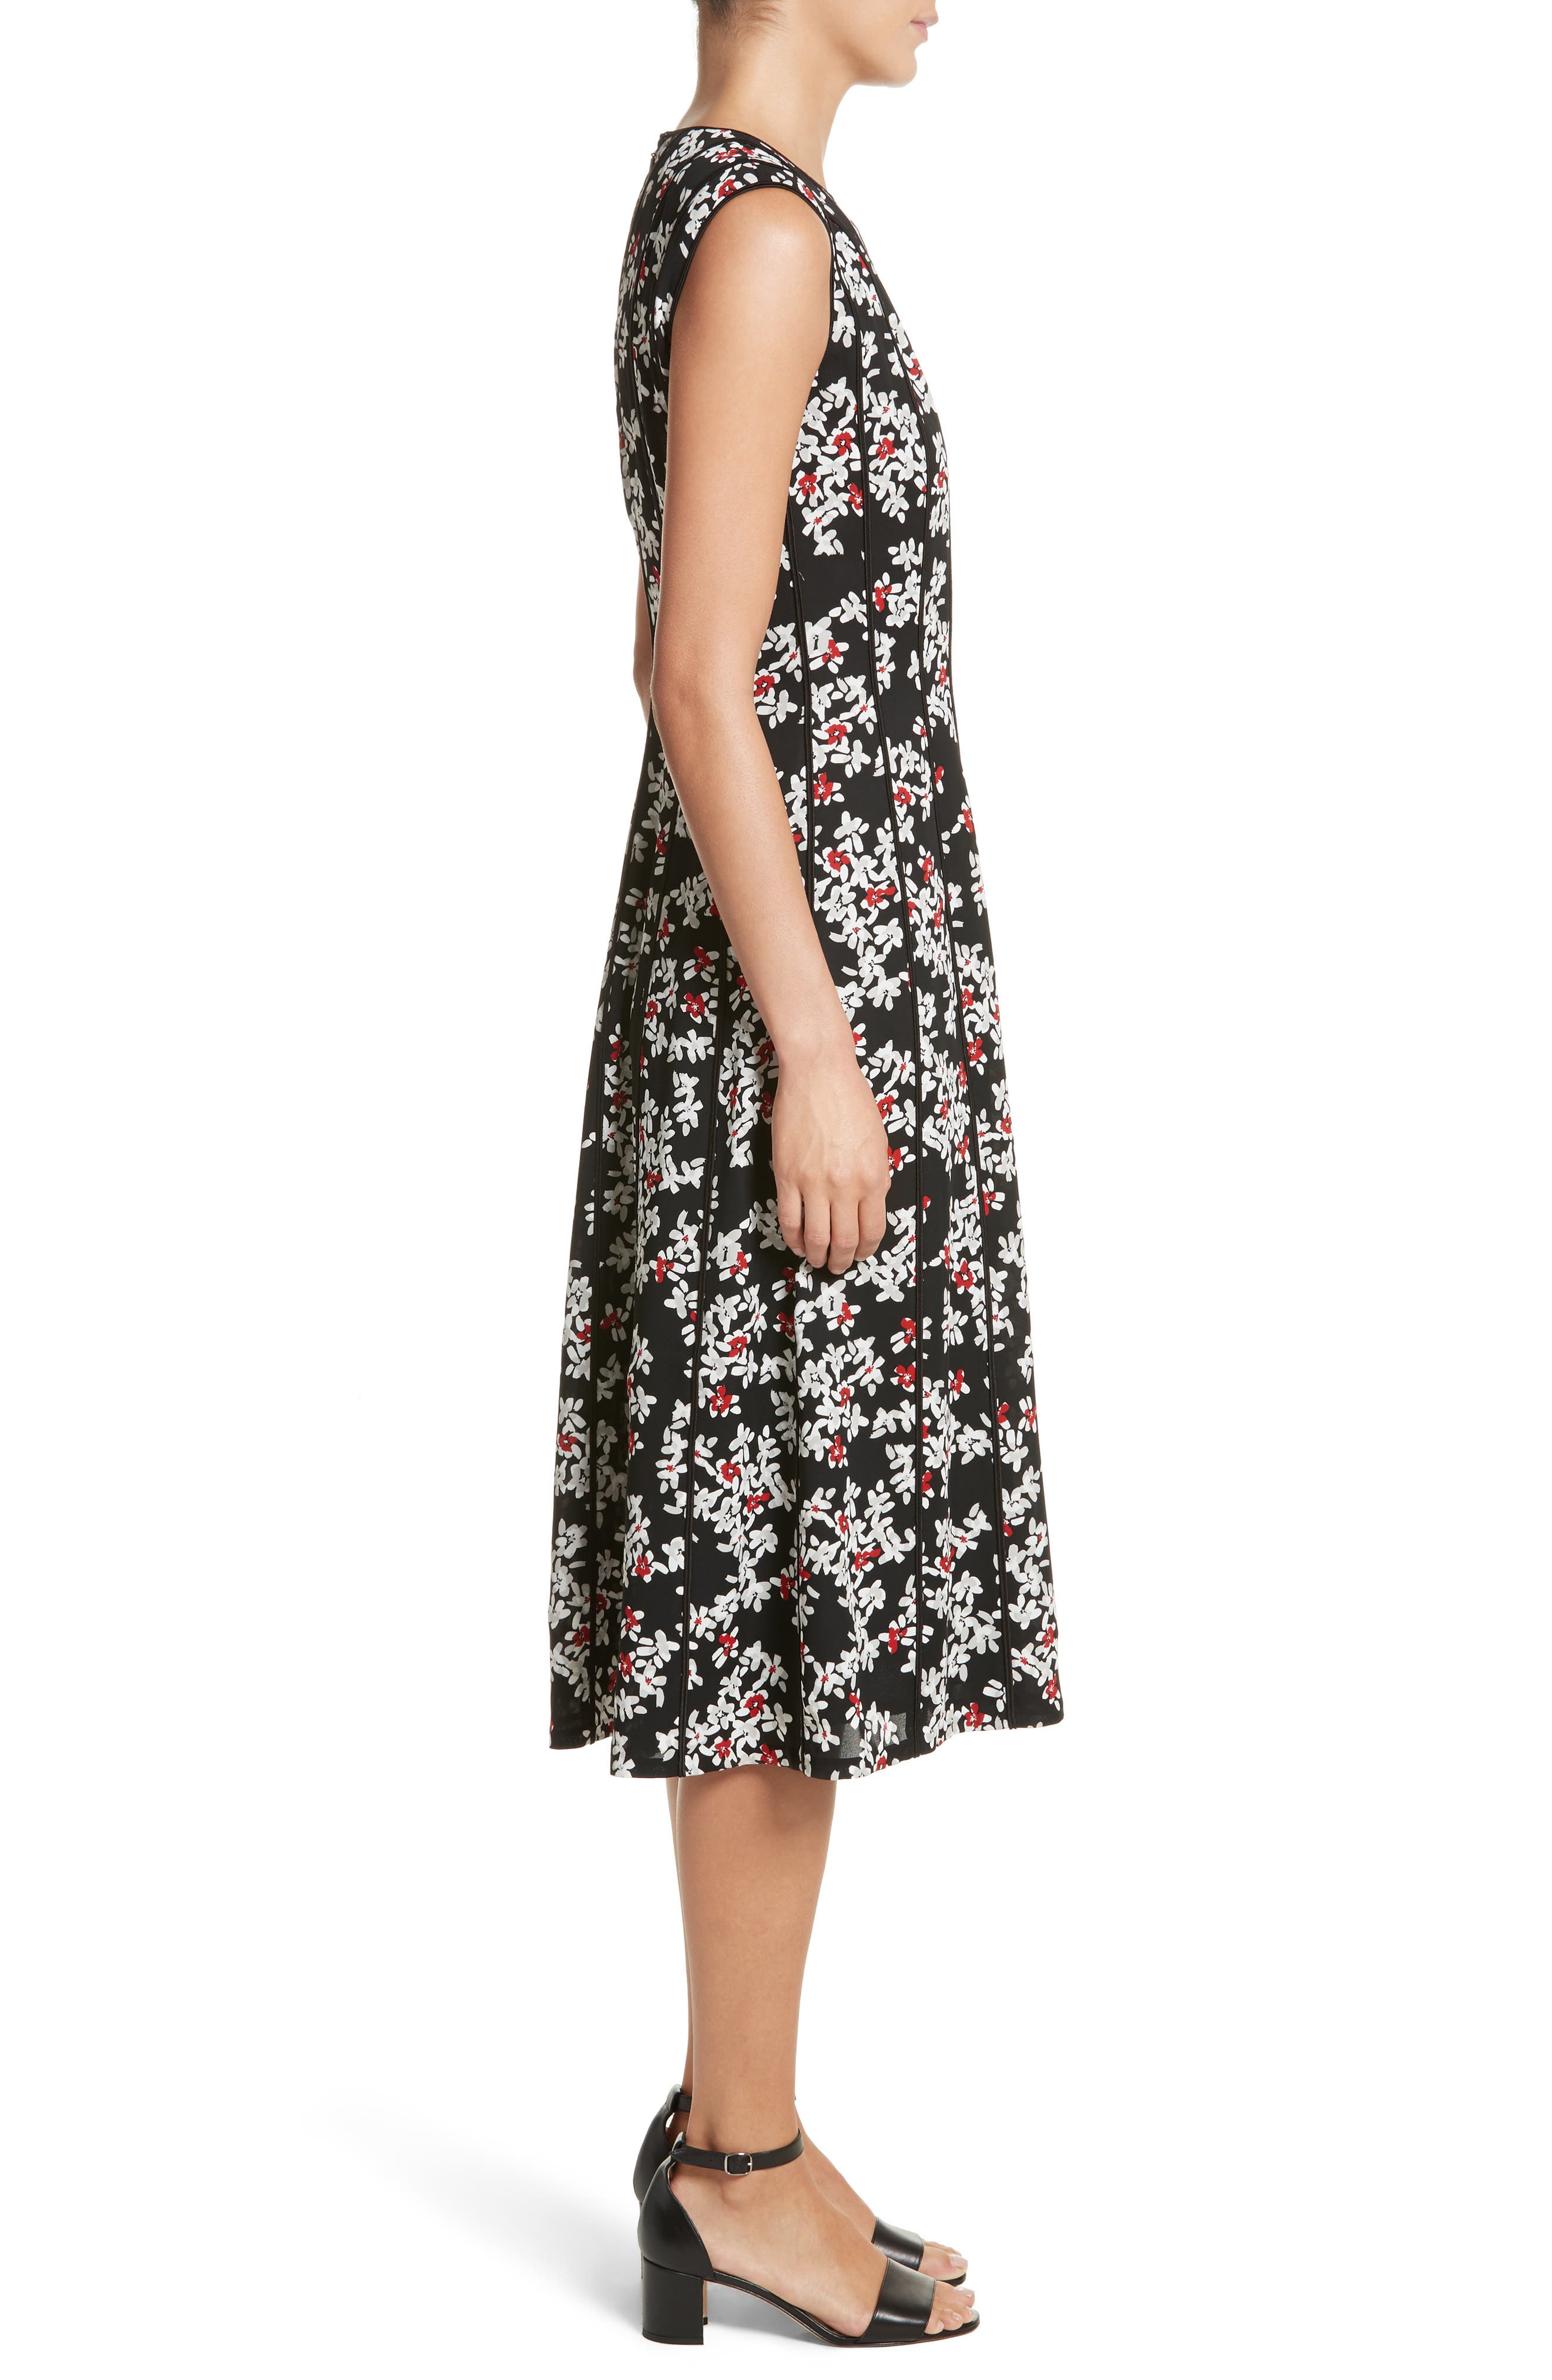 Marley Fresh Floral Drape Cloth Dress,                             Alternate thumbnail 3, color,